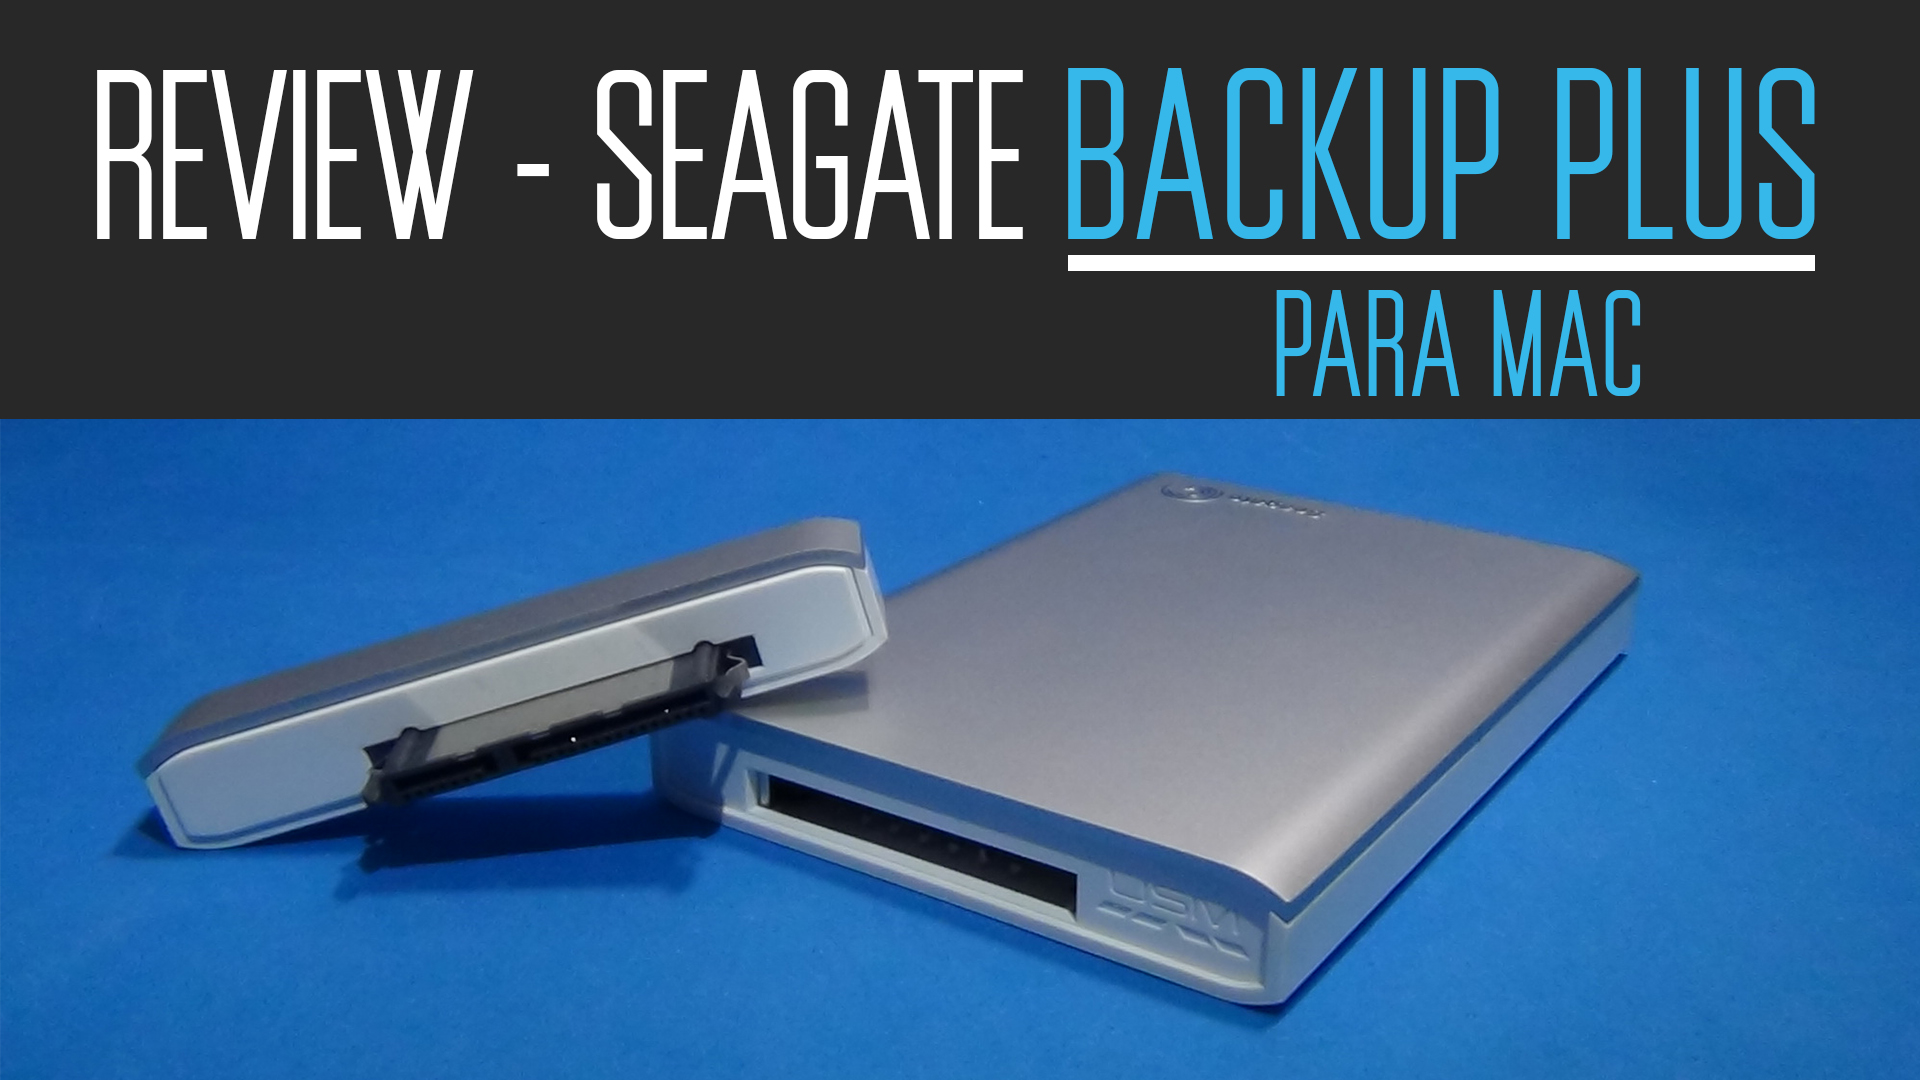 Review - Seagate Backup Plus para Mac